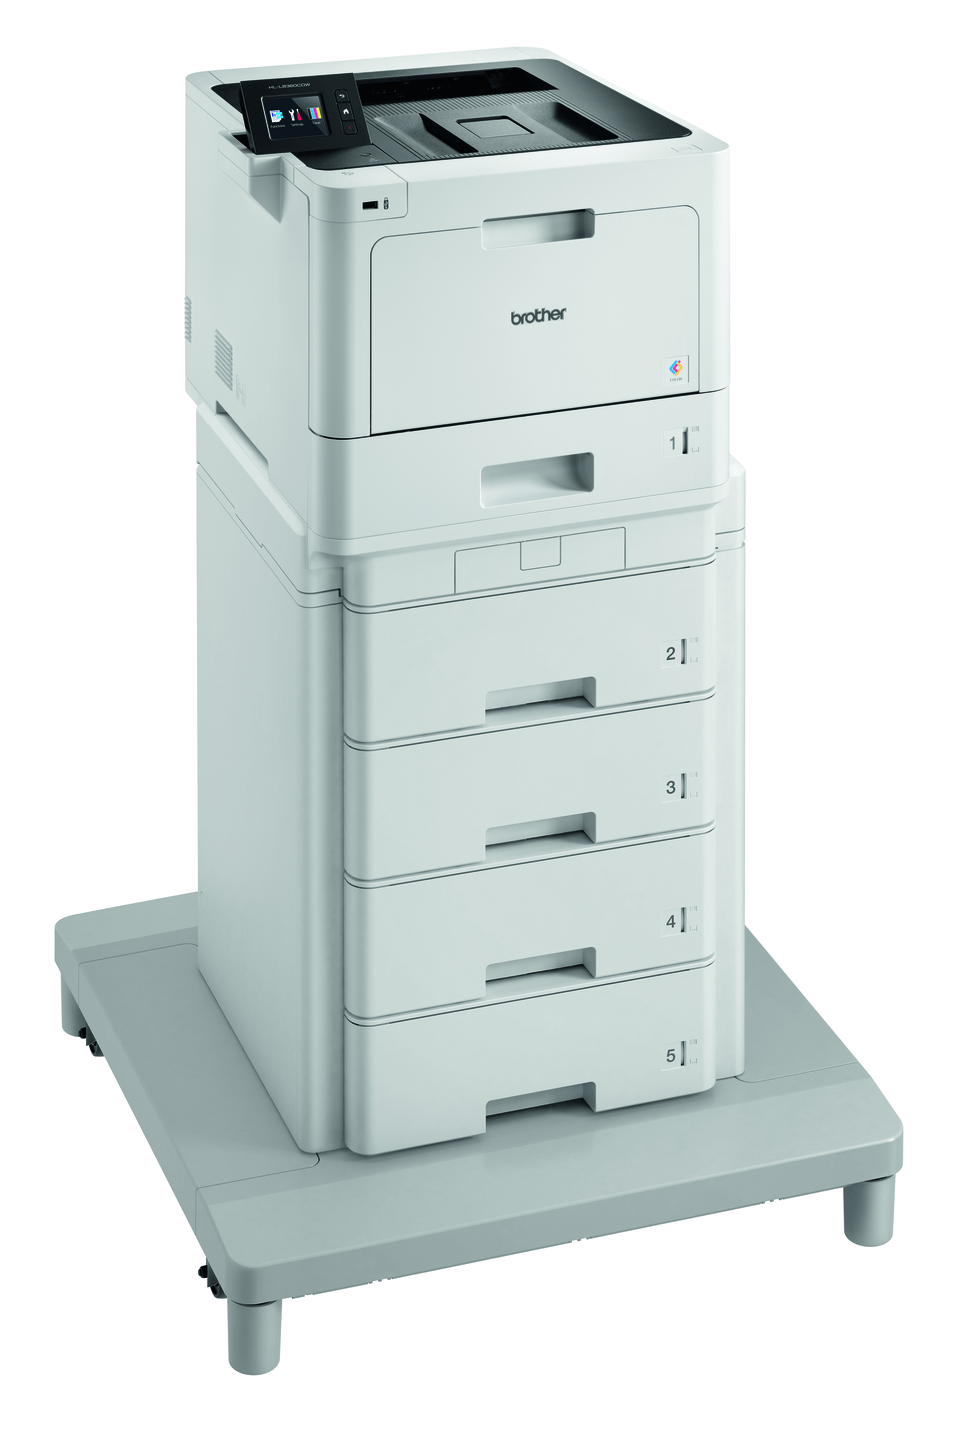 HL-L8360CDWMT - Professional Colour Laser Printer + Tower Tray + Tower Tray Connector 3